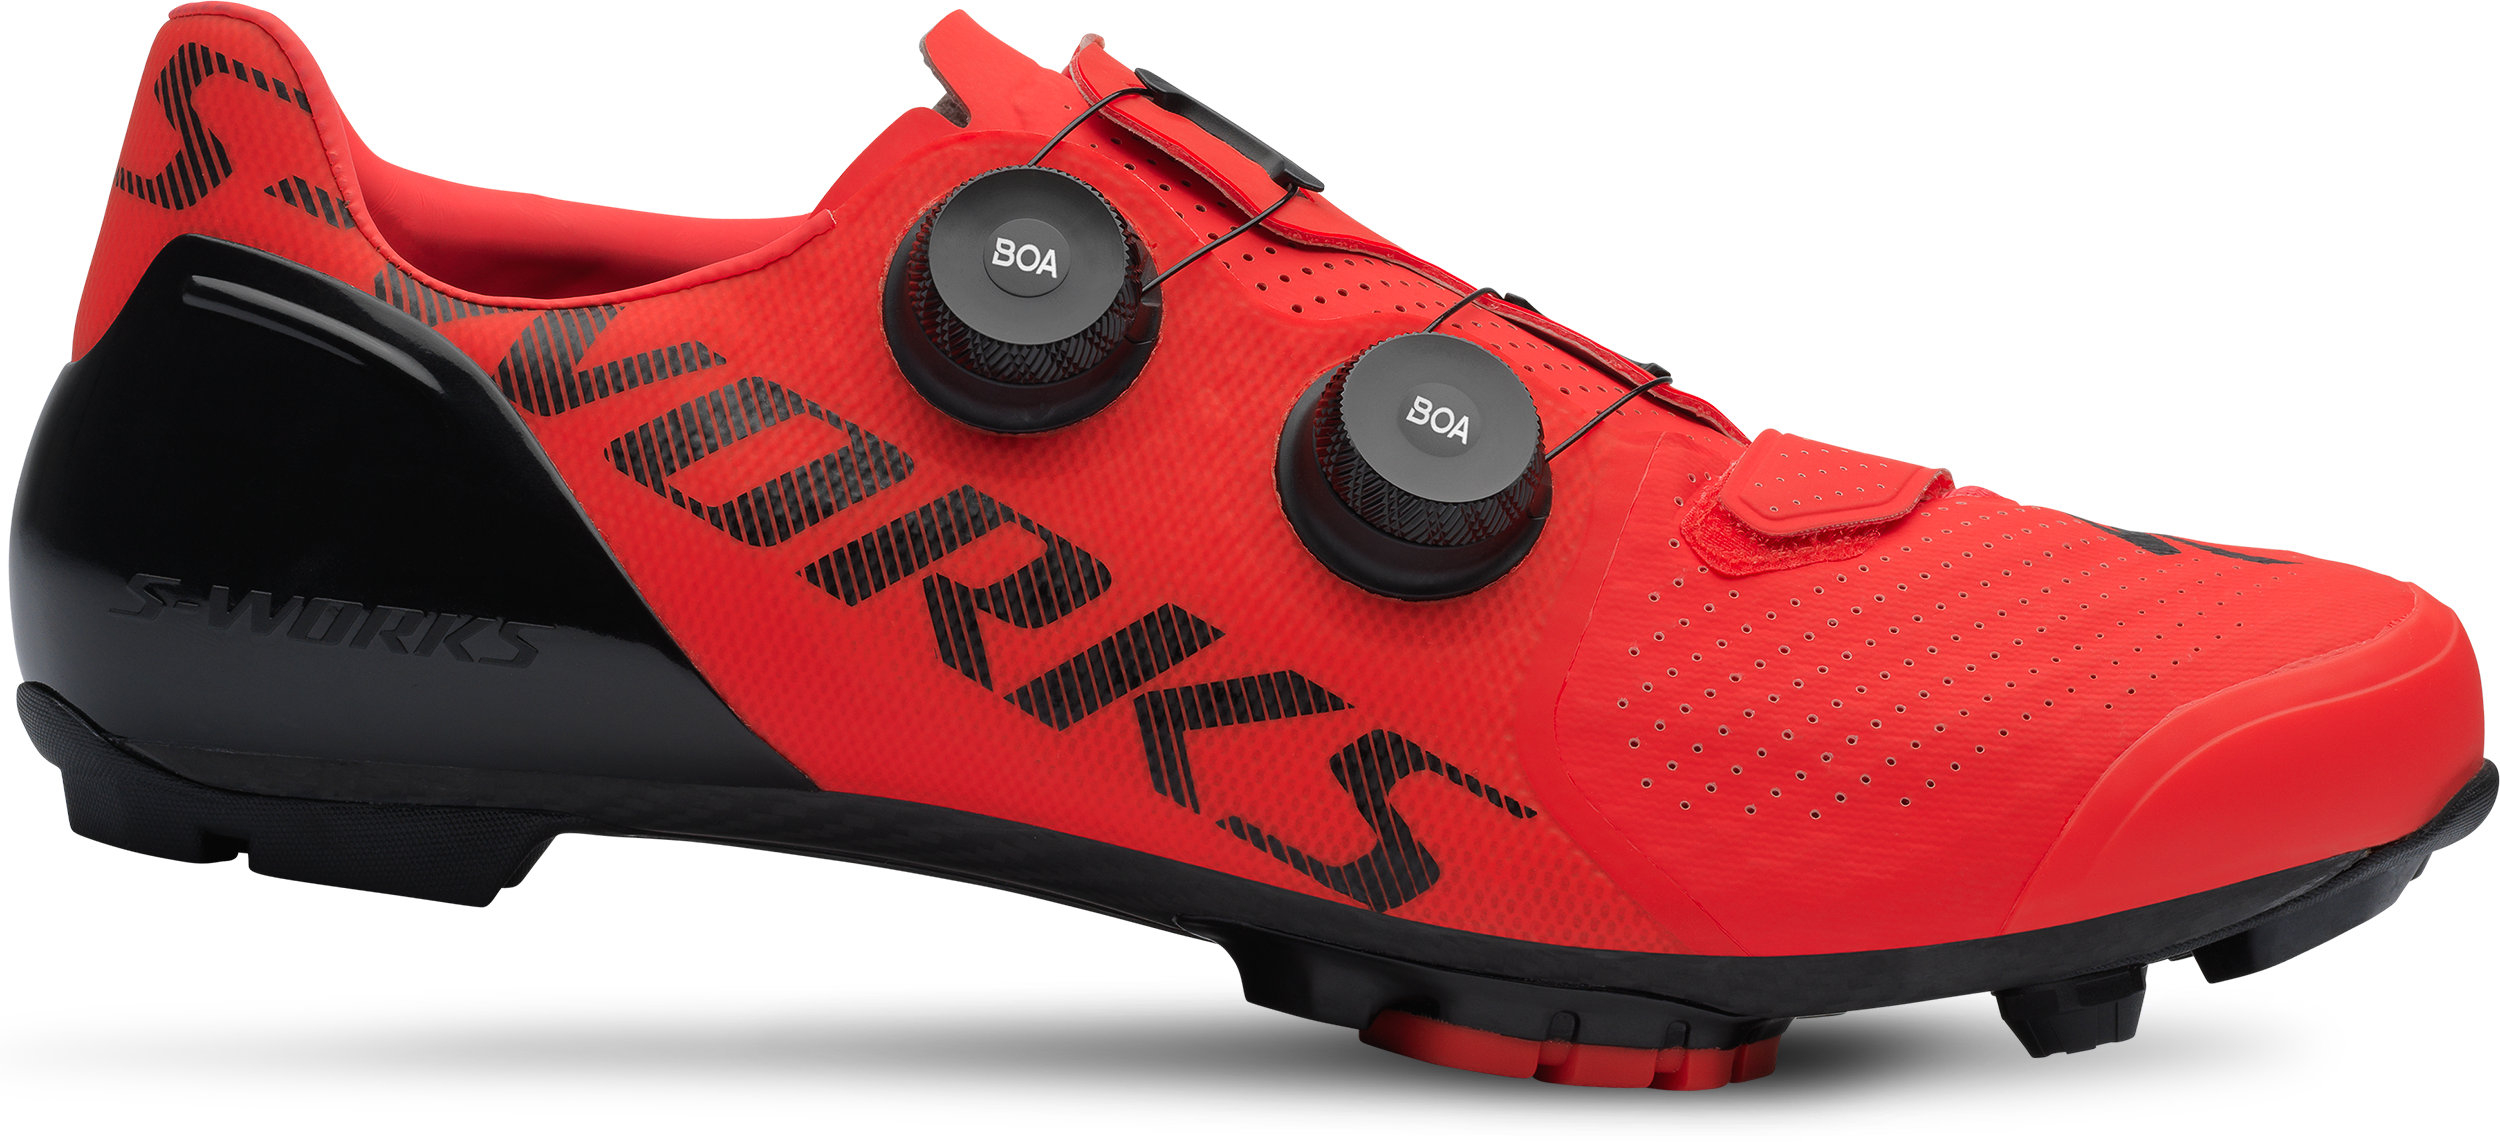 2020 Specialized S Works Recon Xc Mountain Bike Shoes Specialized Concept Store